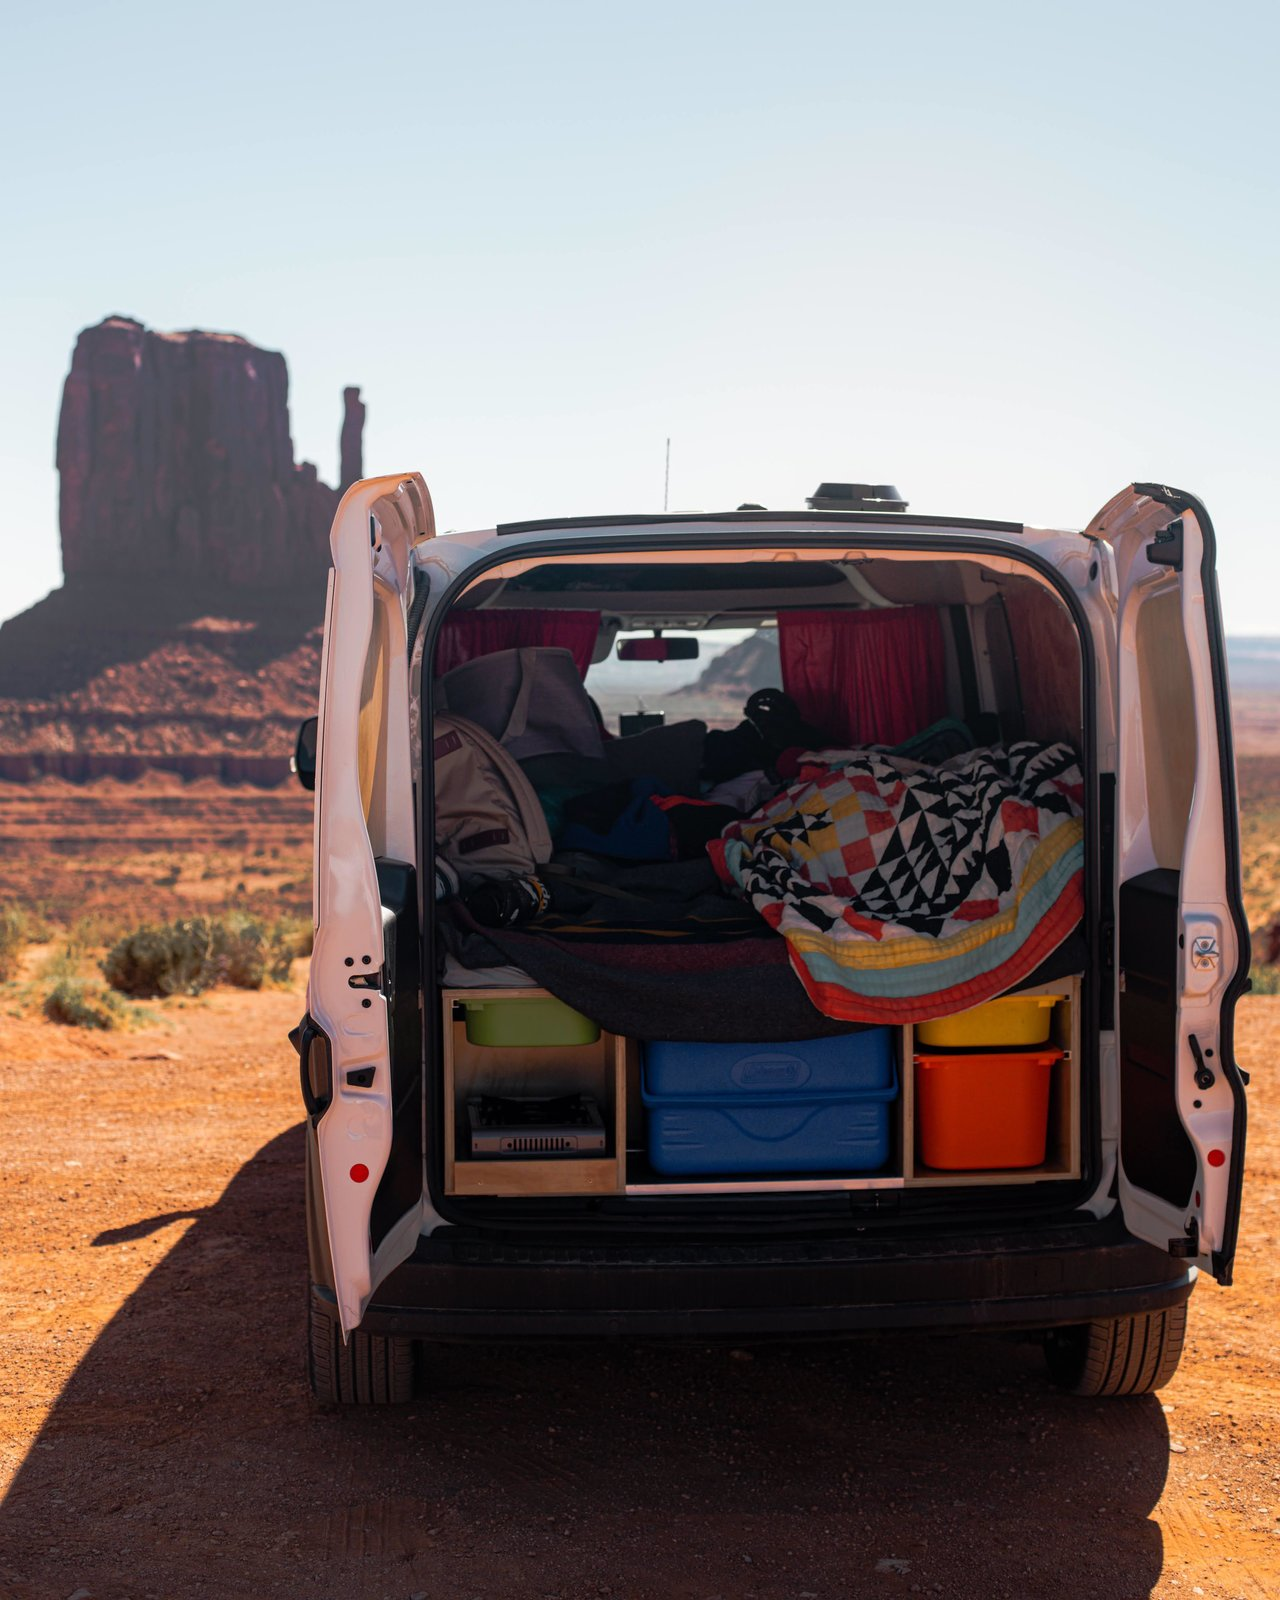 Explore Colorado's frontier with a Dodge RAM that has all the bells and whistles.  Photo 3 of 18 in 17 Kick-Ass Campers and Trailers You Can Rent From $45 a Night